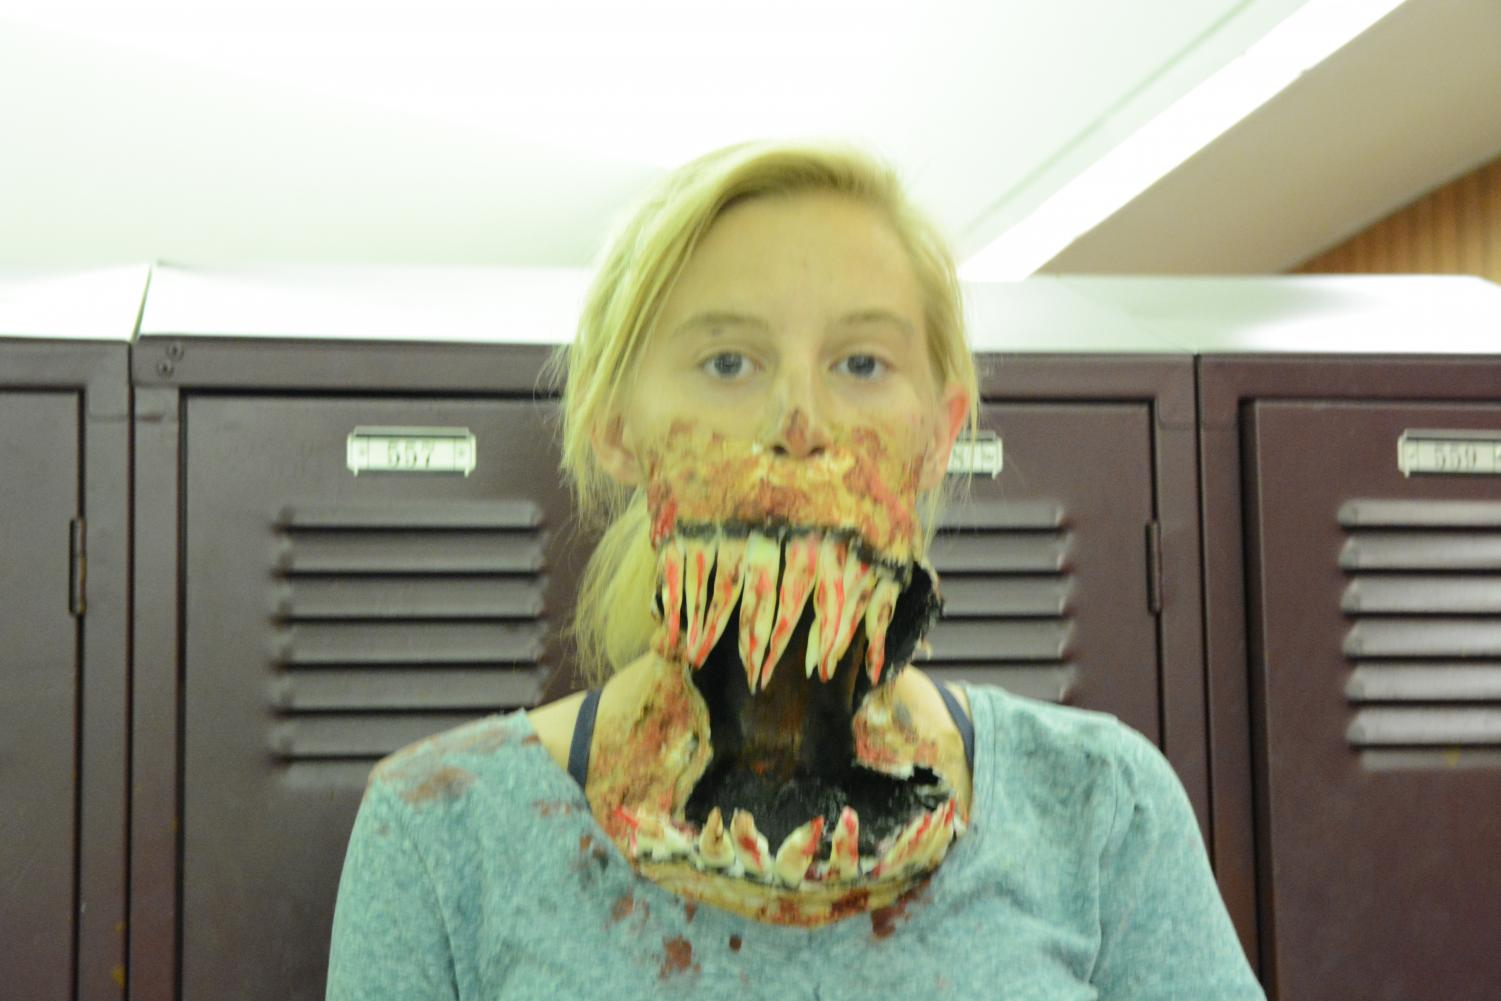 %22My+favorite+thing+I+have+been+for+Halloween+is+this+costume%2C+a+scary+big+mouth+monster.%22+Amanda+Shoreman